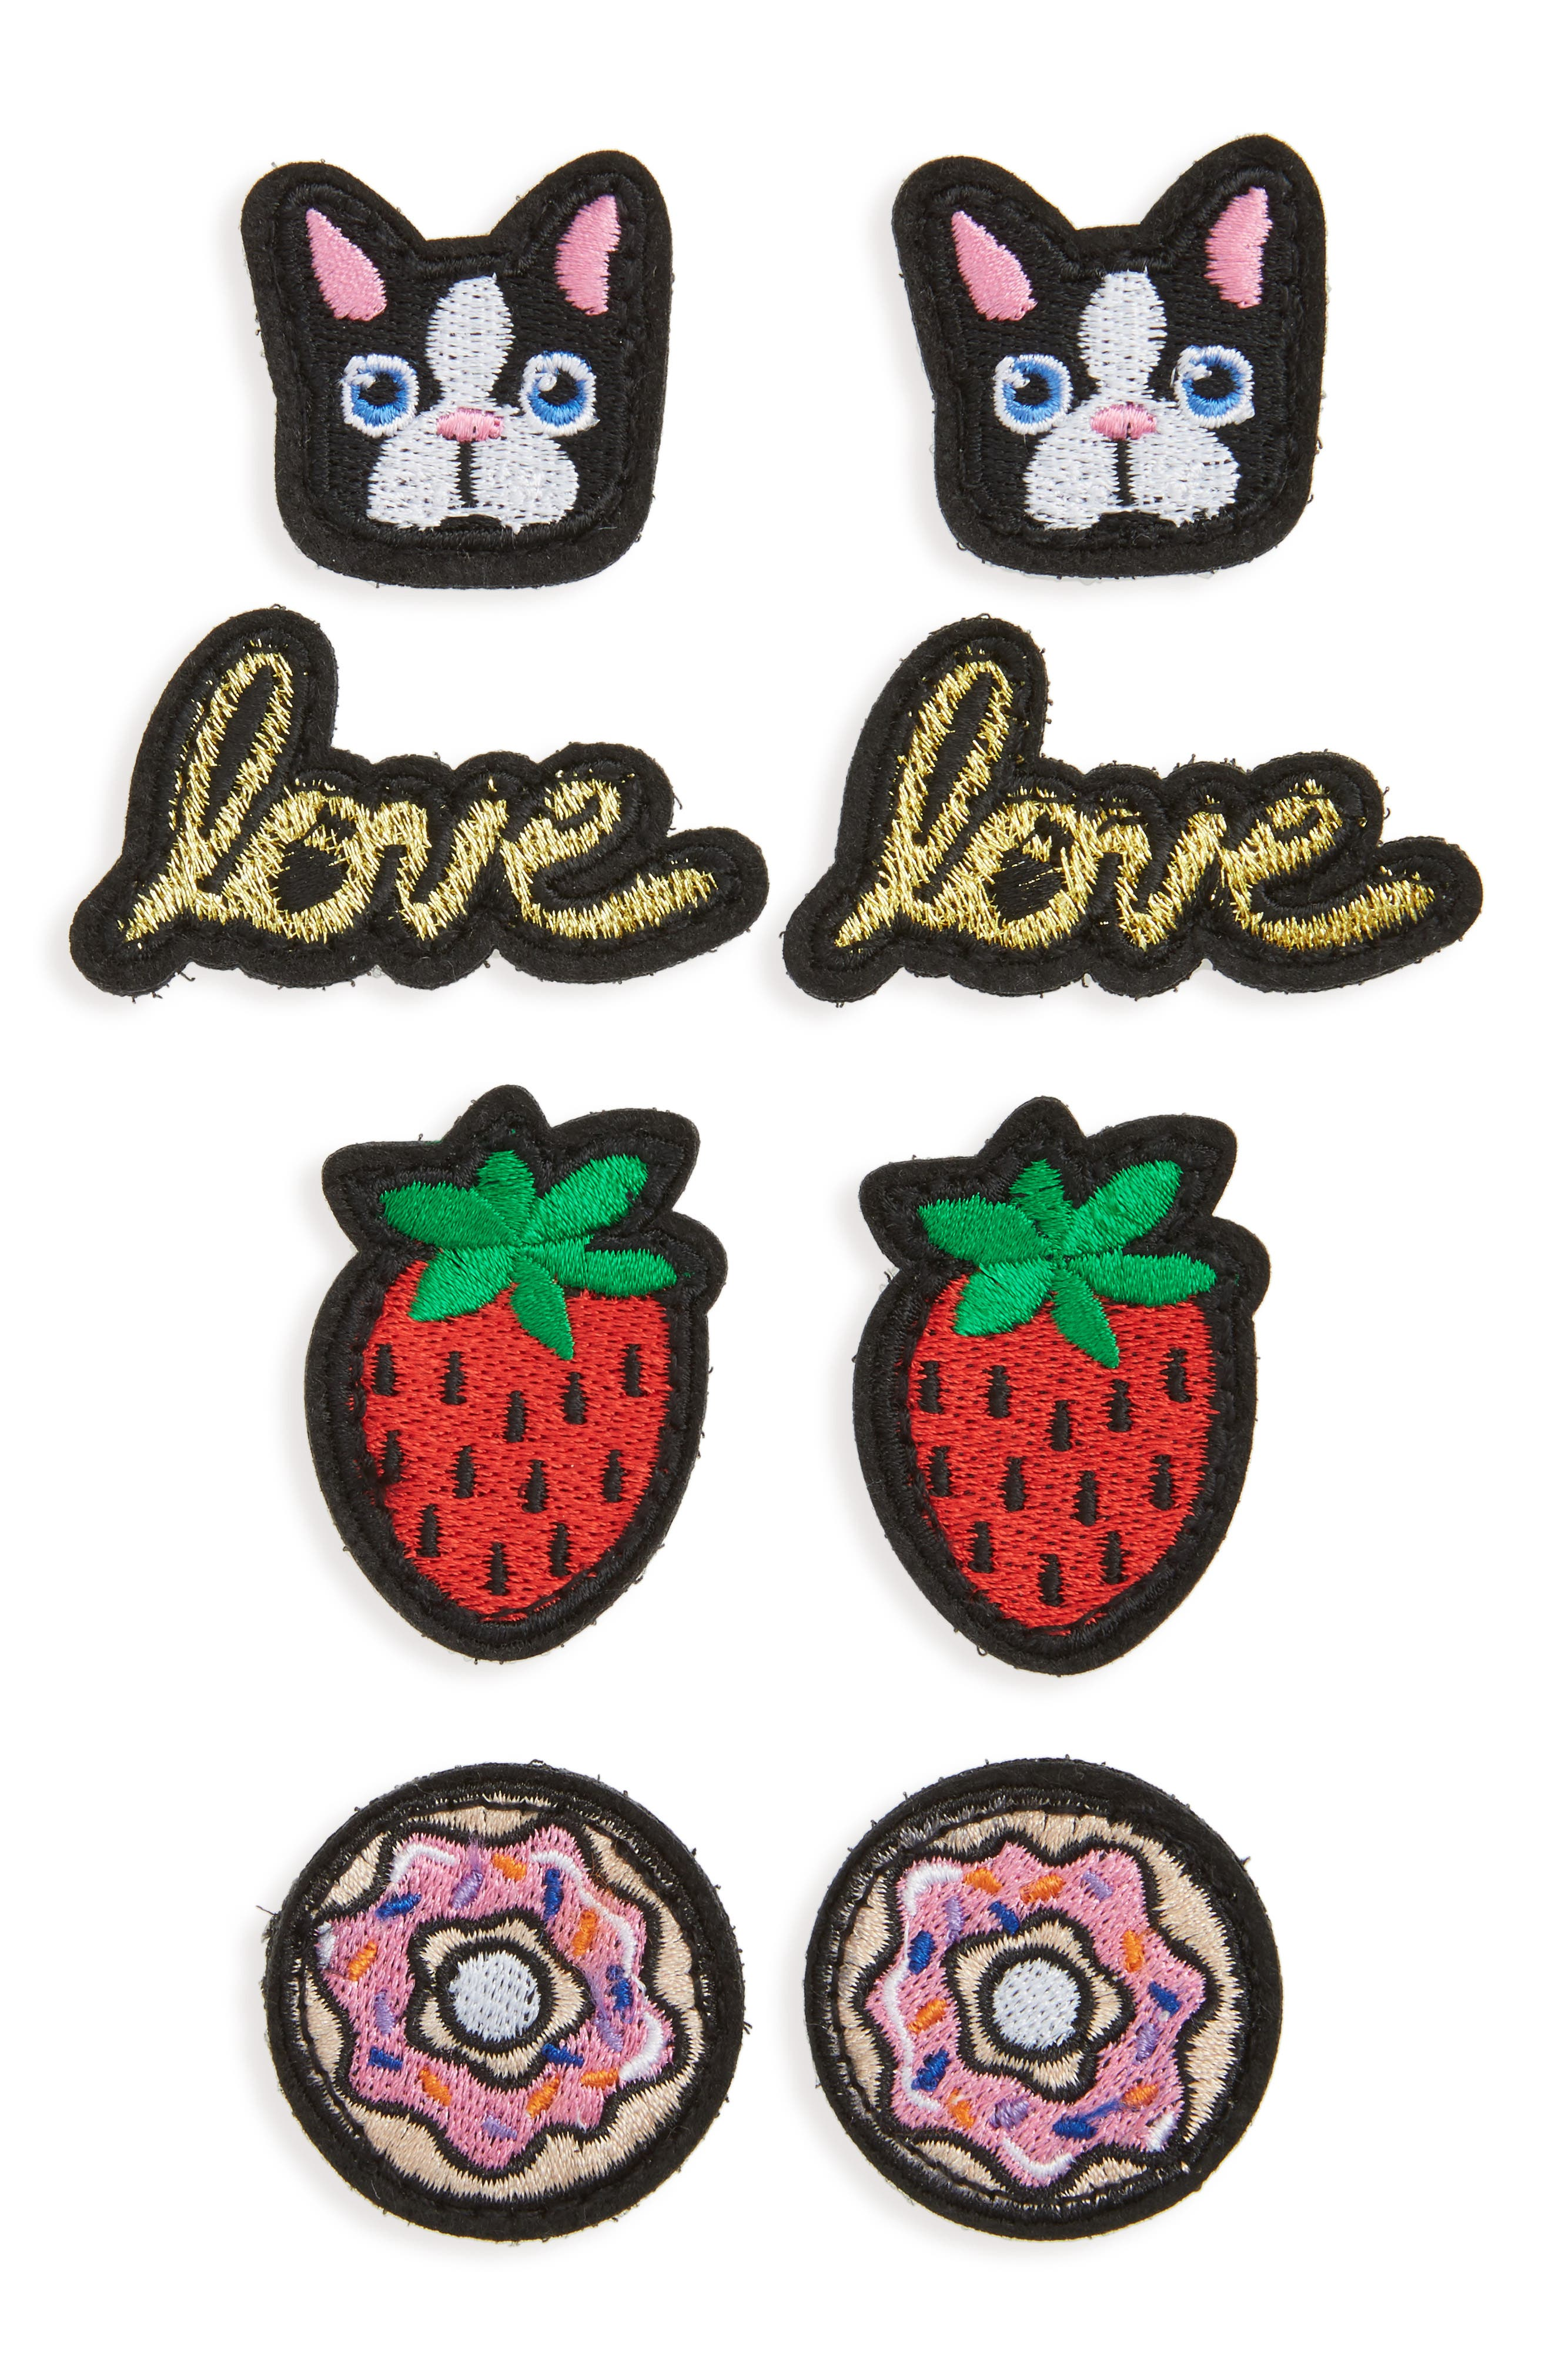 Alternate Image 1 Selected - Tucker + Tate Set of 8 Embroidered Patches